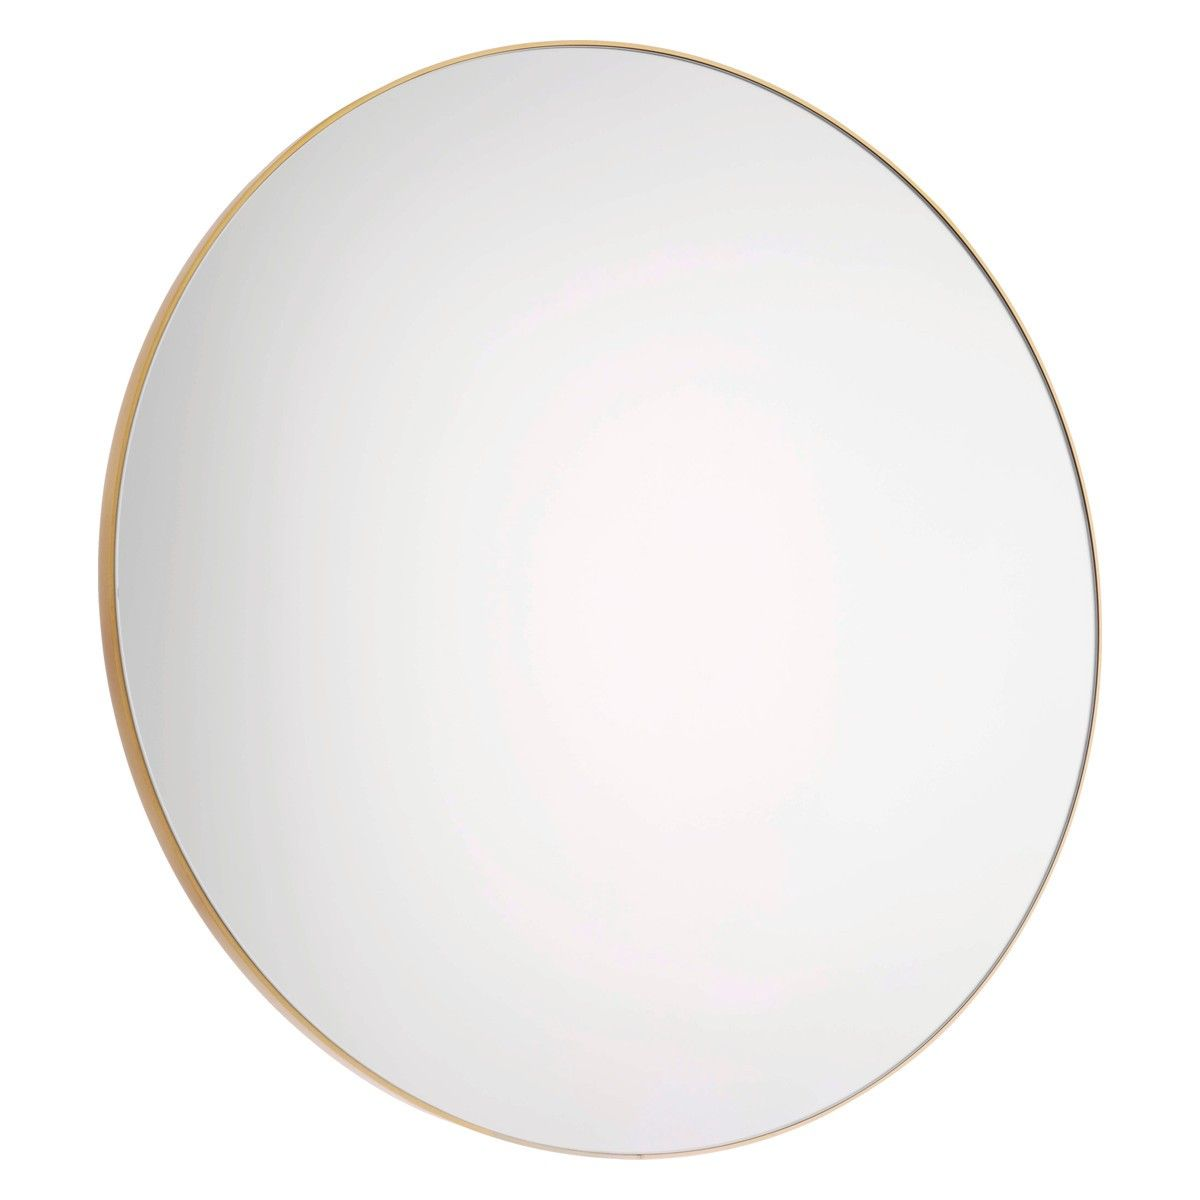 Patsy D82cm Large Round Gold Wall Mirror Gold Mirror Wall Large Round Wall Mirror Mirror Wall